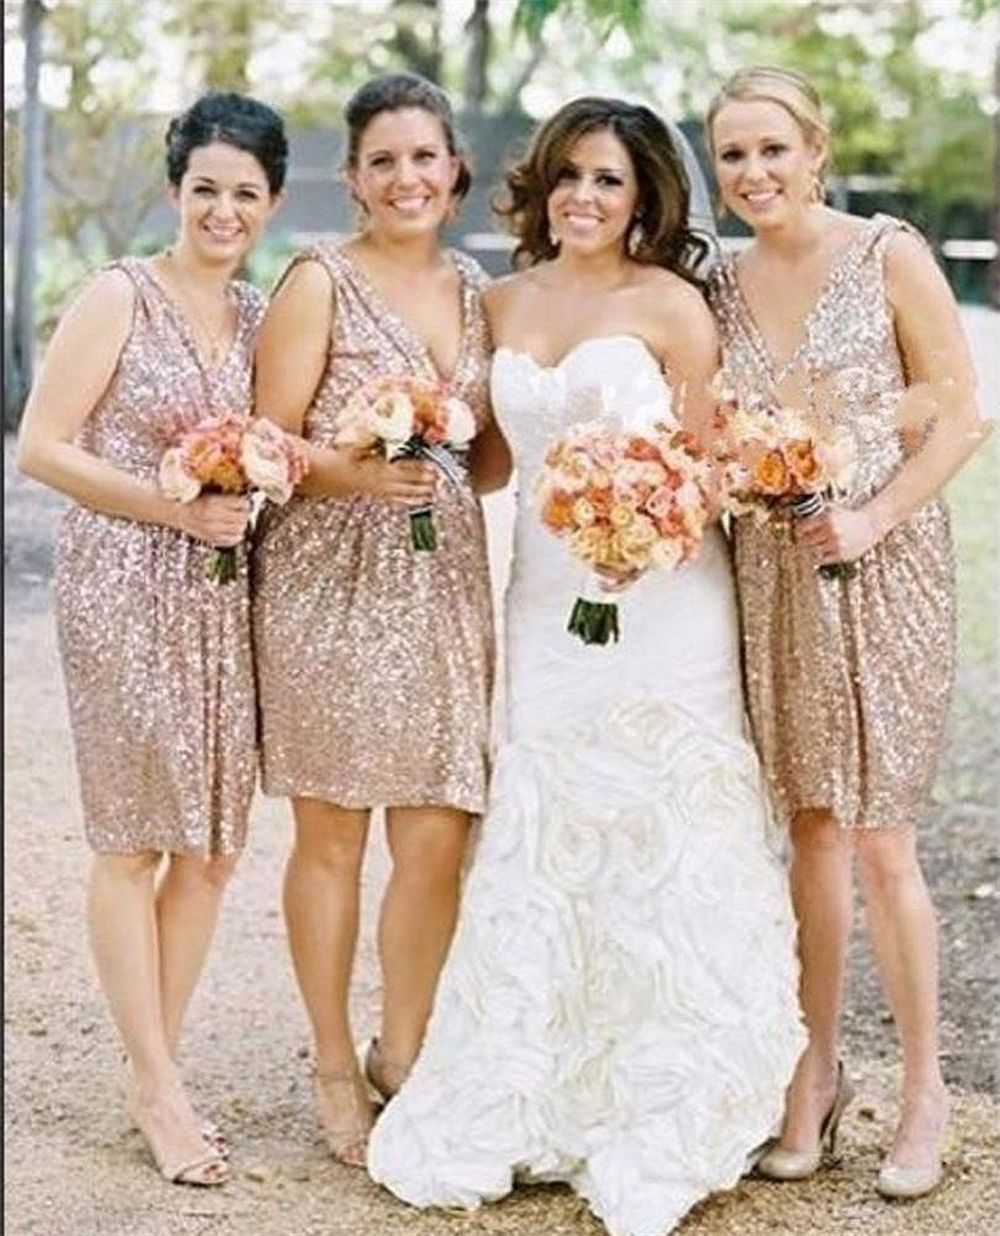 Find a sparkly short champagne gold bridesmaid dress sexy sequin find a sparkly short champagne gold bridesmaid dress sexy sequin bridesmaid dresses knee length bridesmaid gowns ombrellifo Gallery